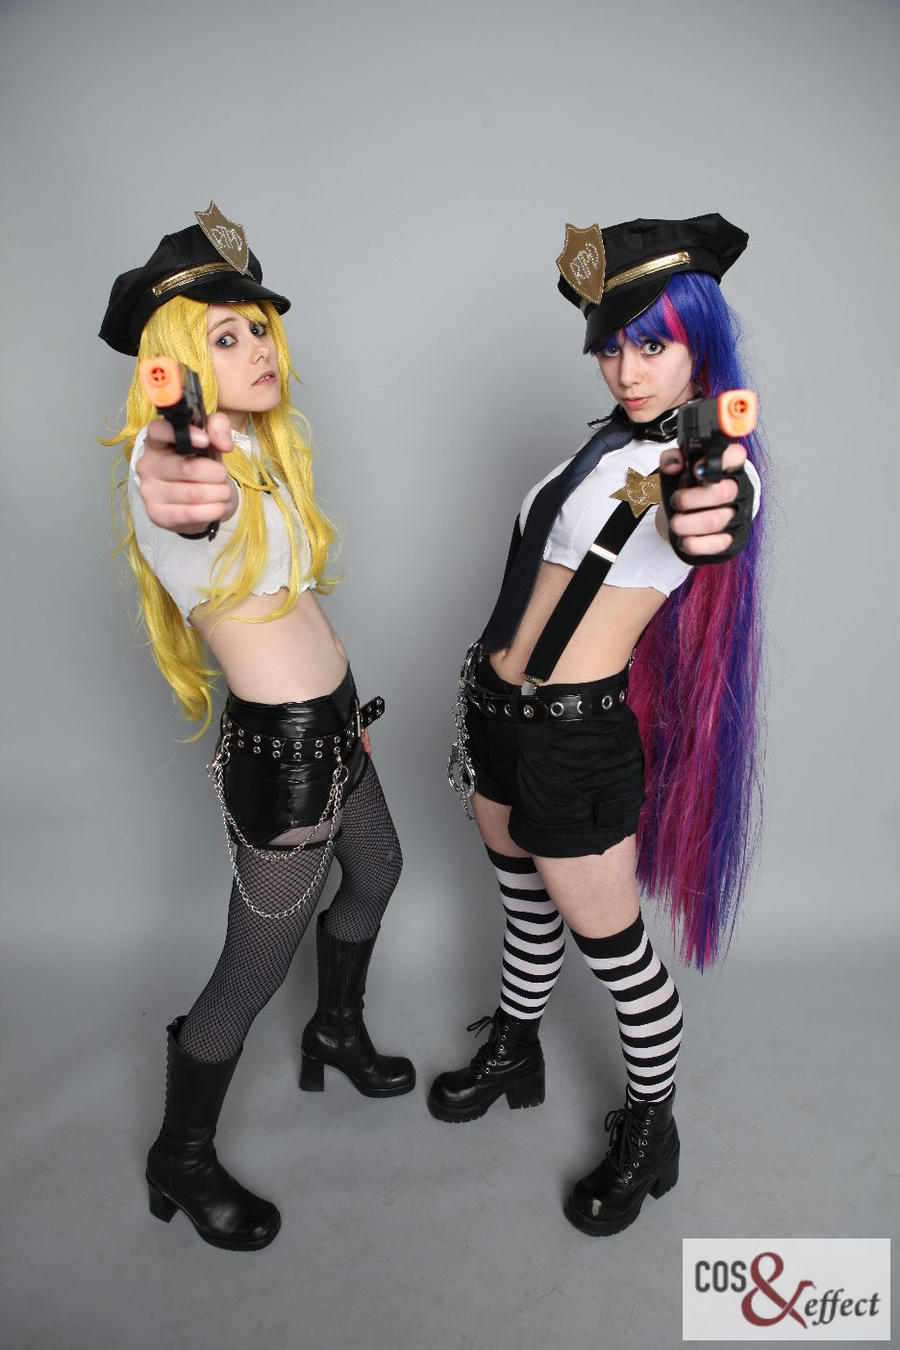 Police Panty and Stocking by Emmaliene